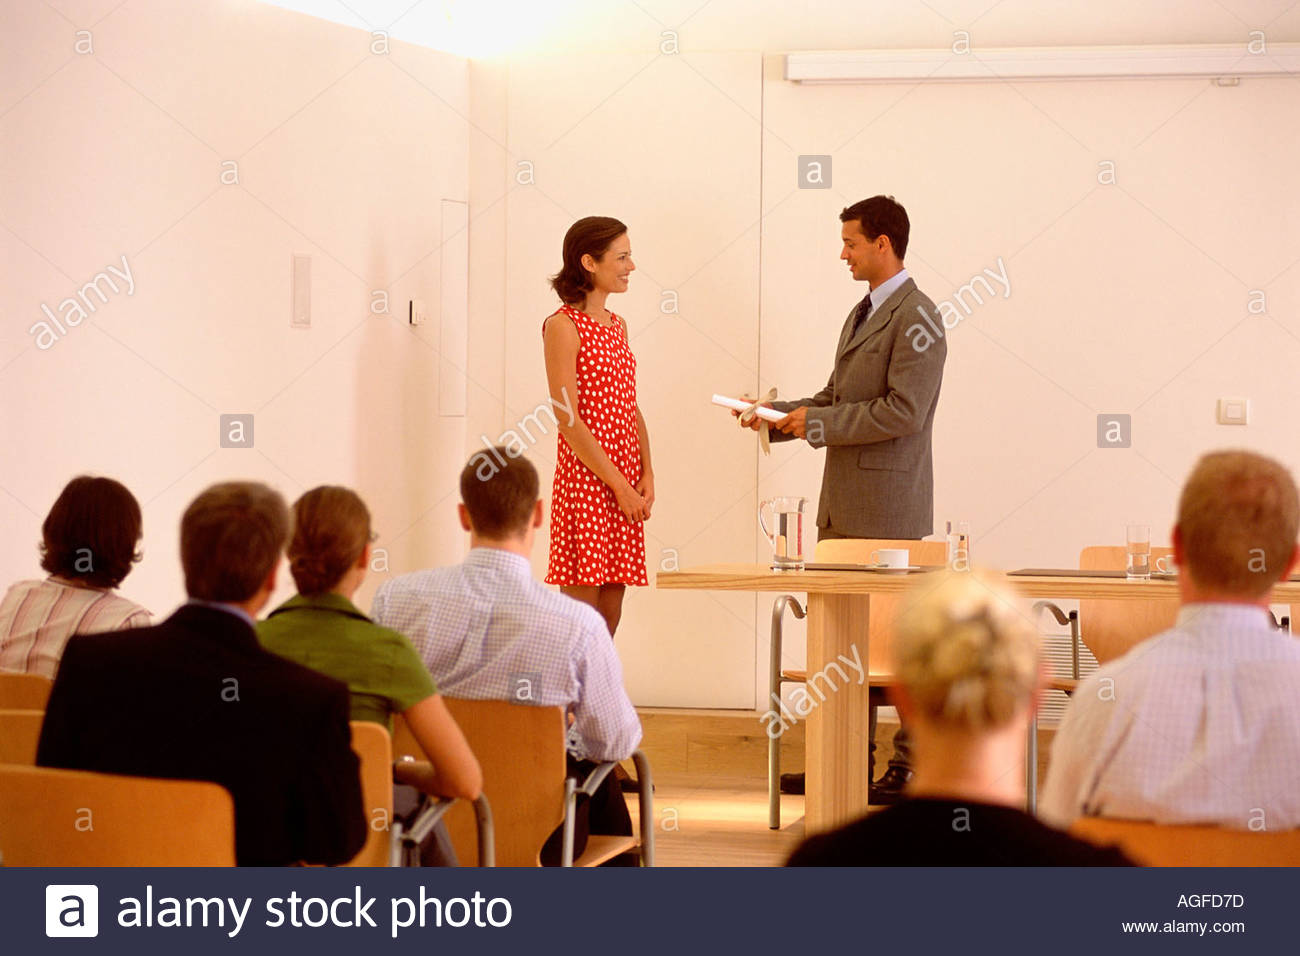 Woman presented a certificate Stock Photo